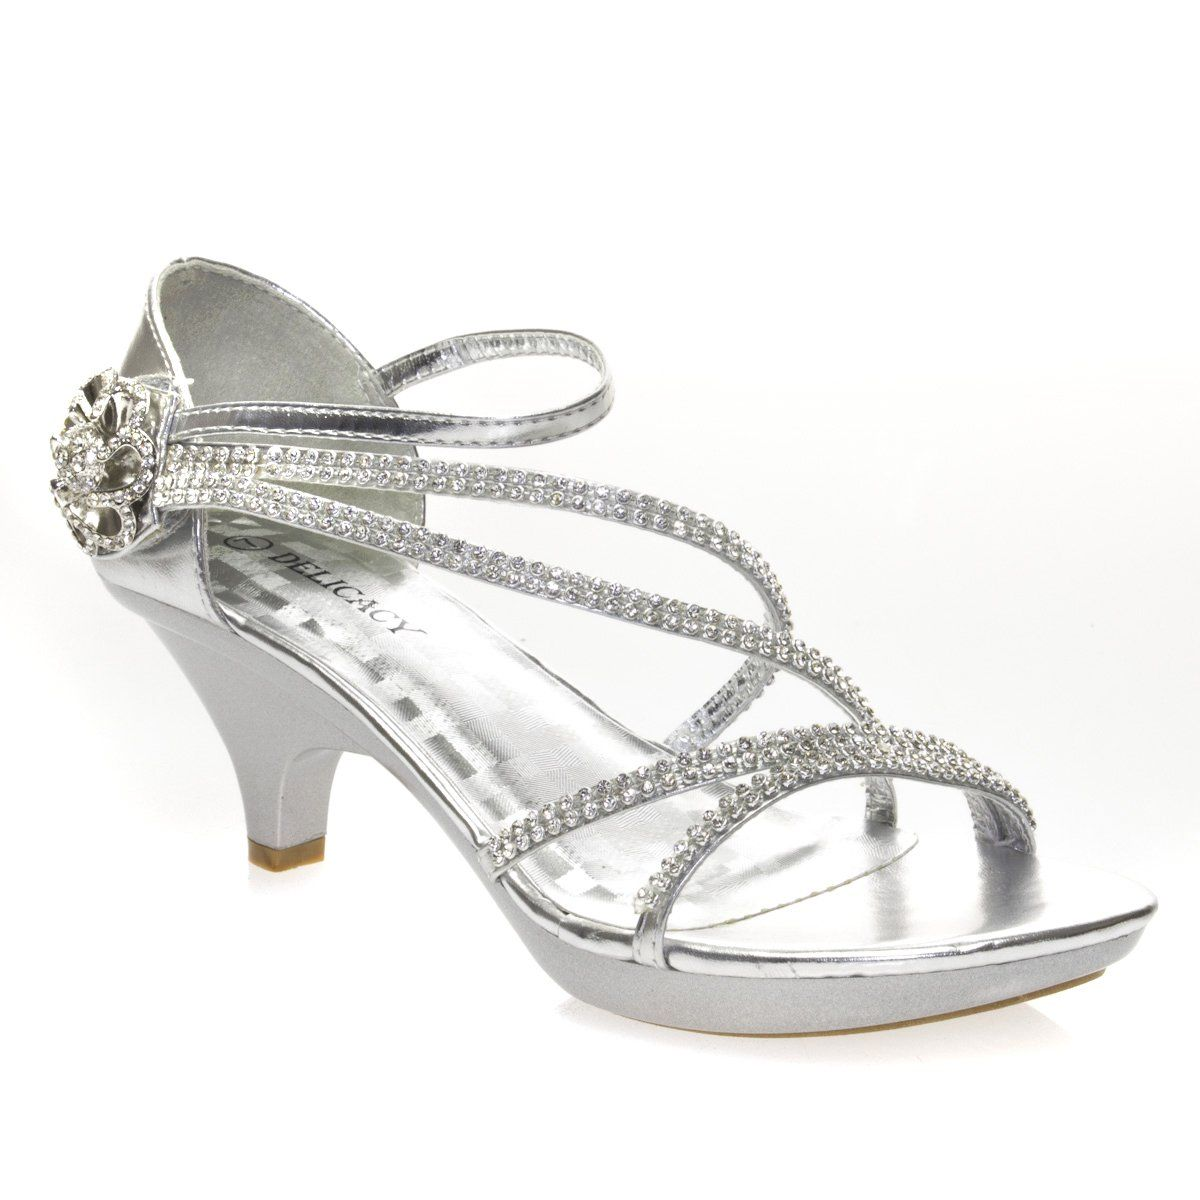 Amazon Com Delicacy Womens Angel 48 Party Dress Sandals Pumps Shoes Silver Wedding Shoes Low Heel Silver Wedding Shoes Low Heels [ 1200 x 1200 Pixel ]